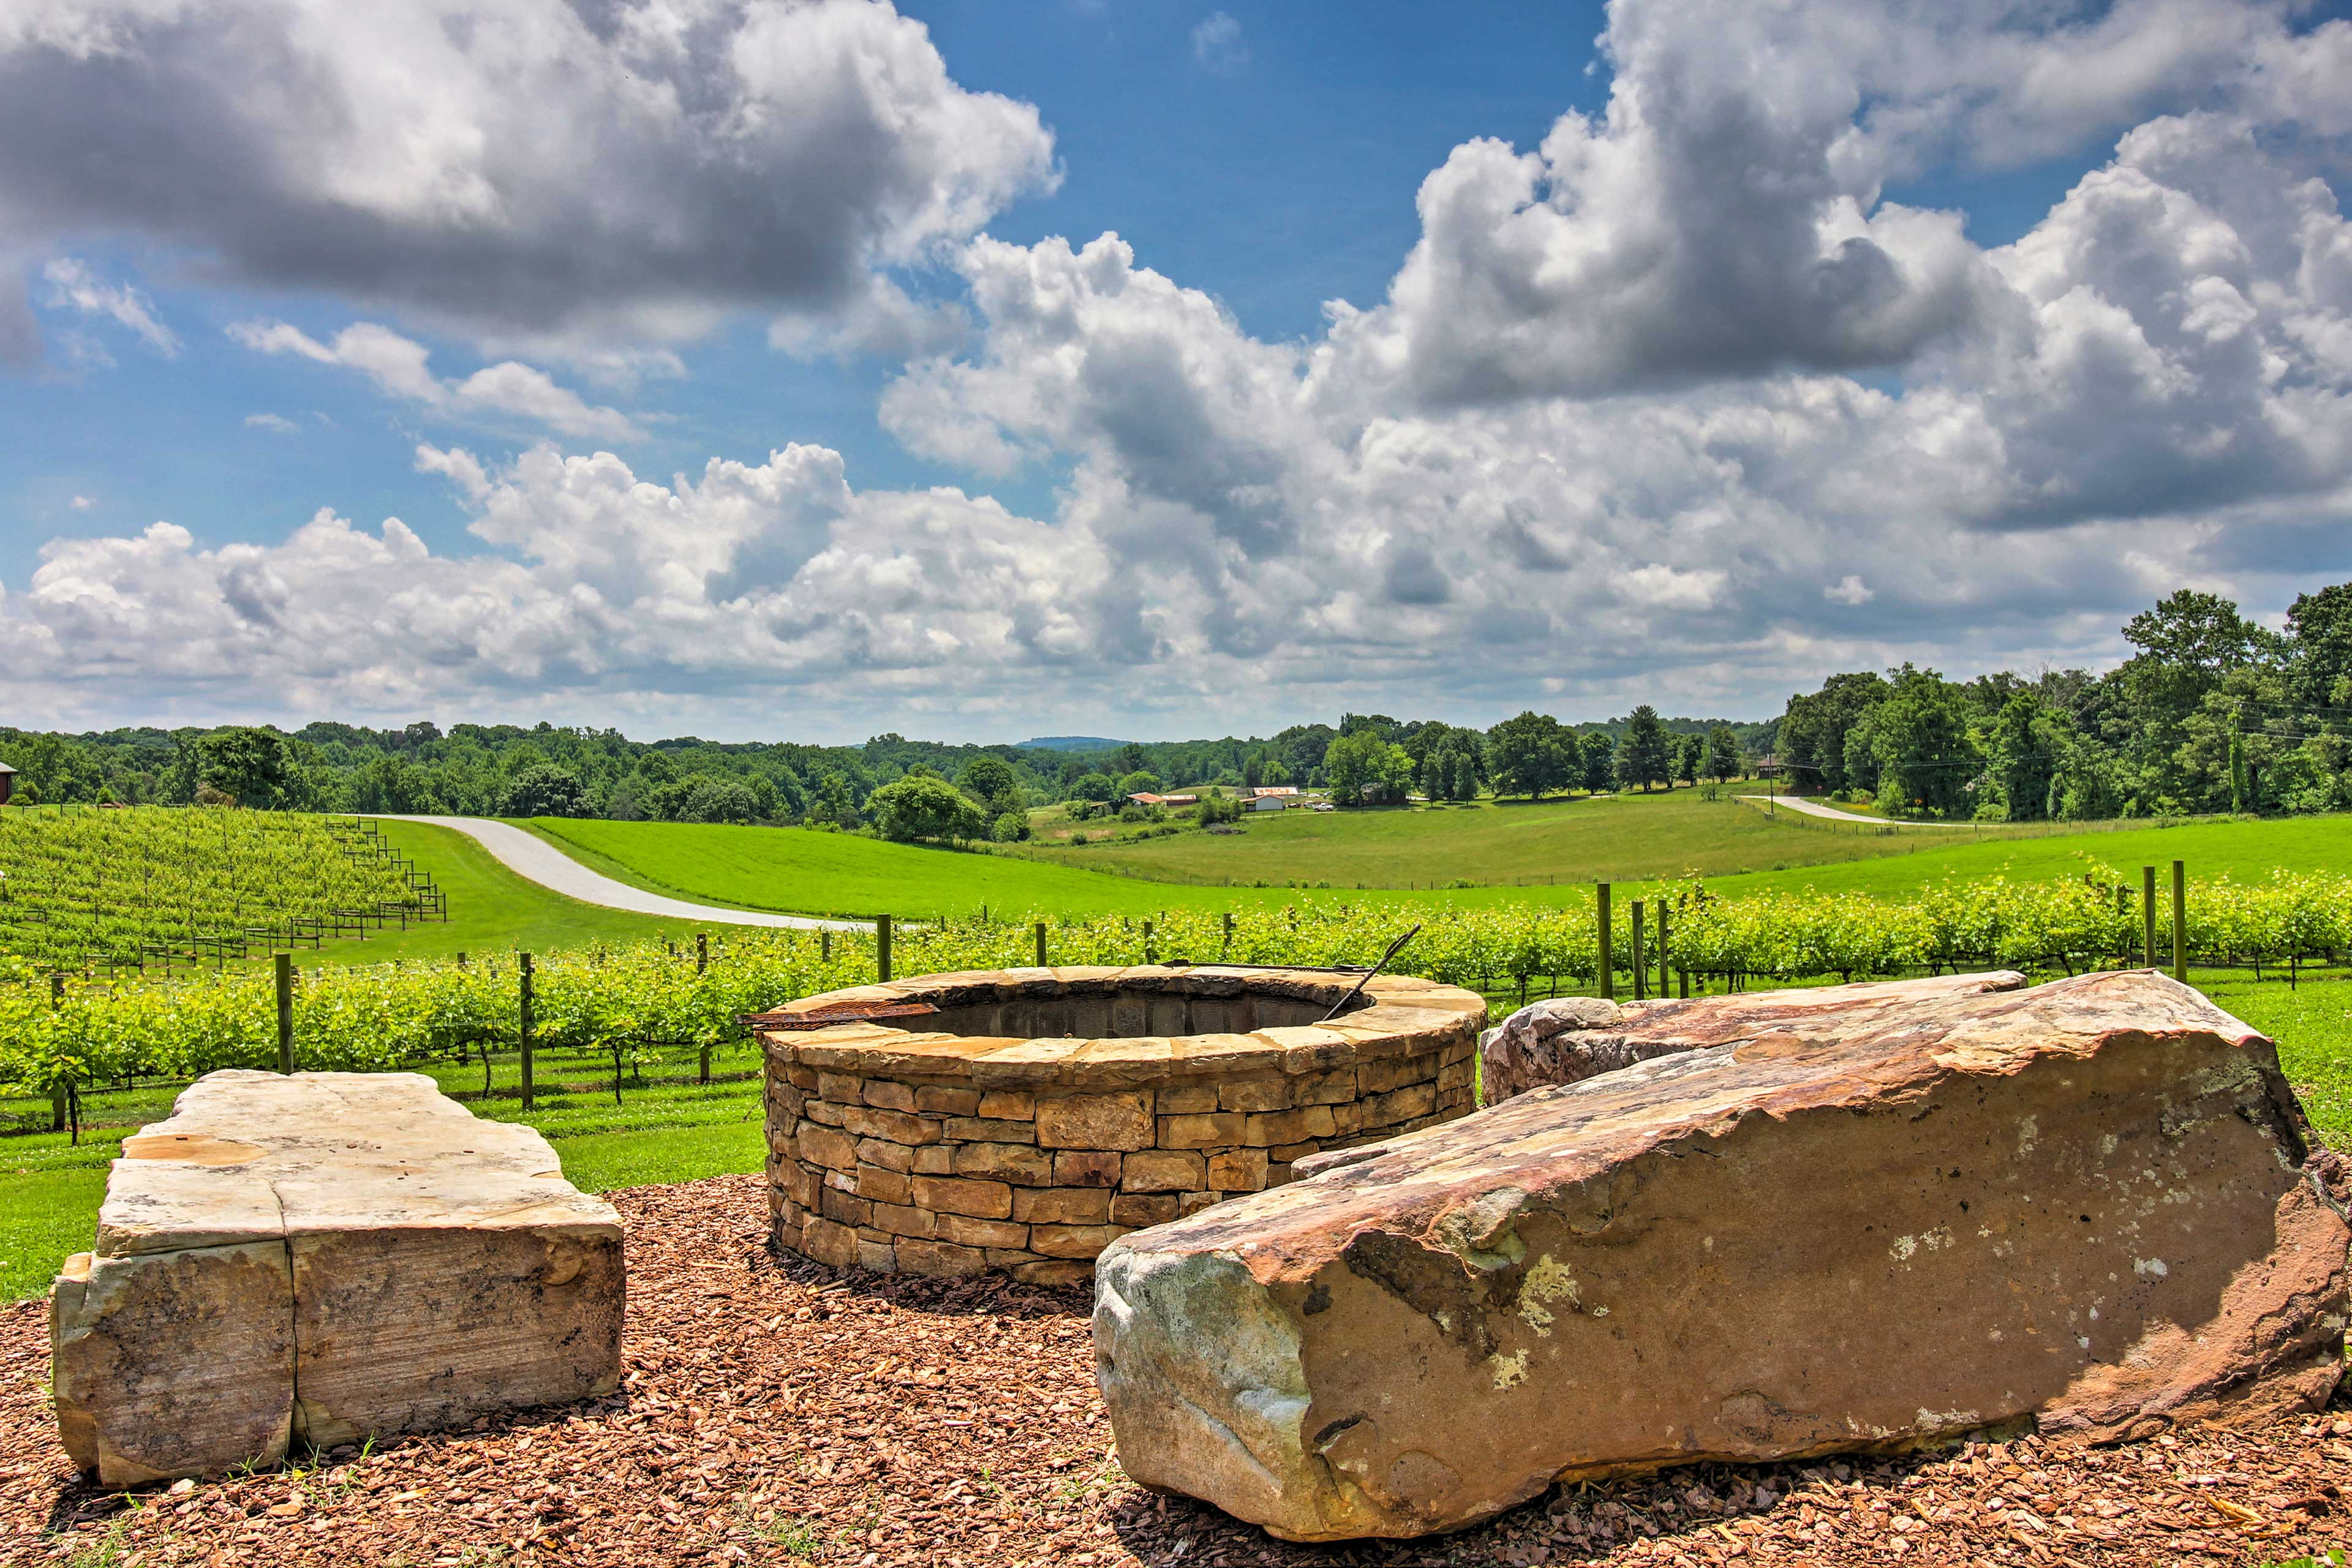 Venture to the winery for a memorable day trip with your group.